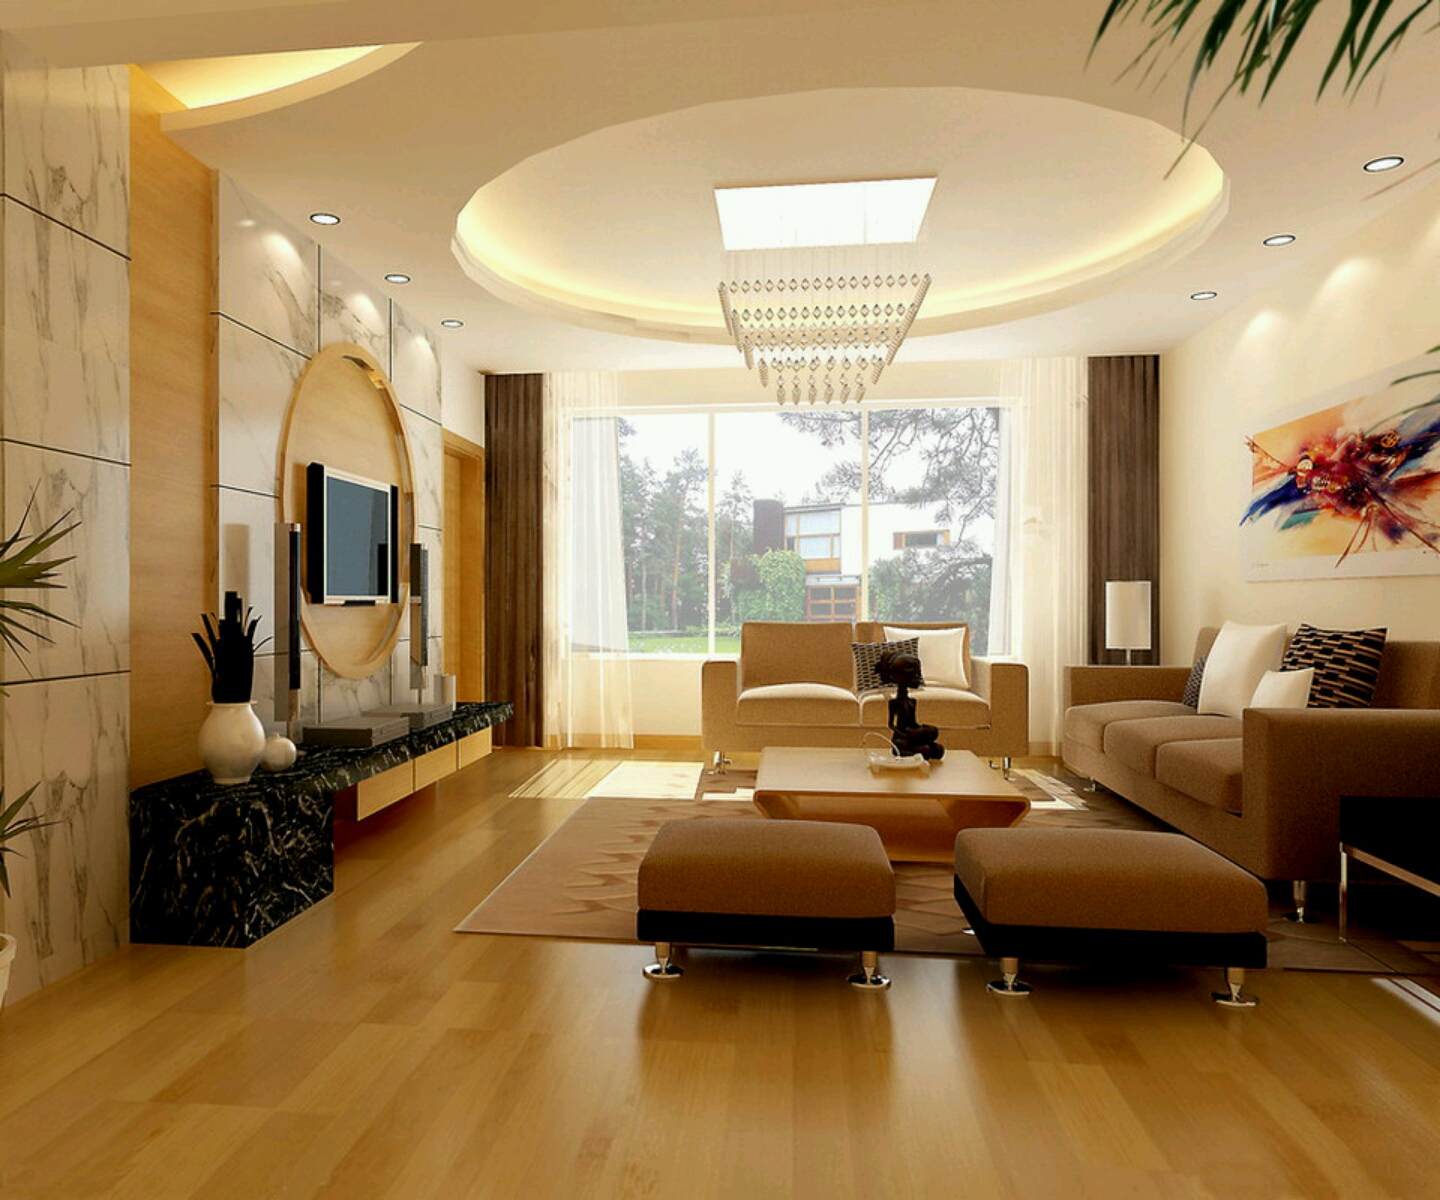 Home Design Ideas Architecture: Modern Interior Decoration Living Rooms Ceiling Designs